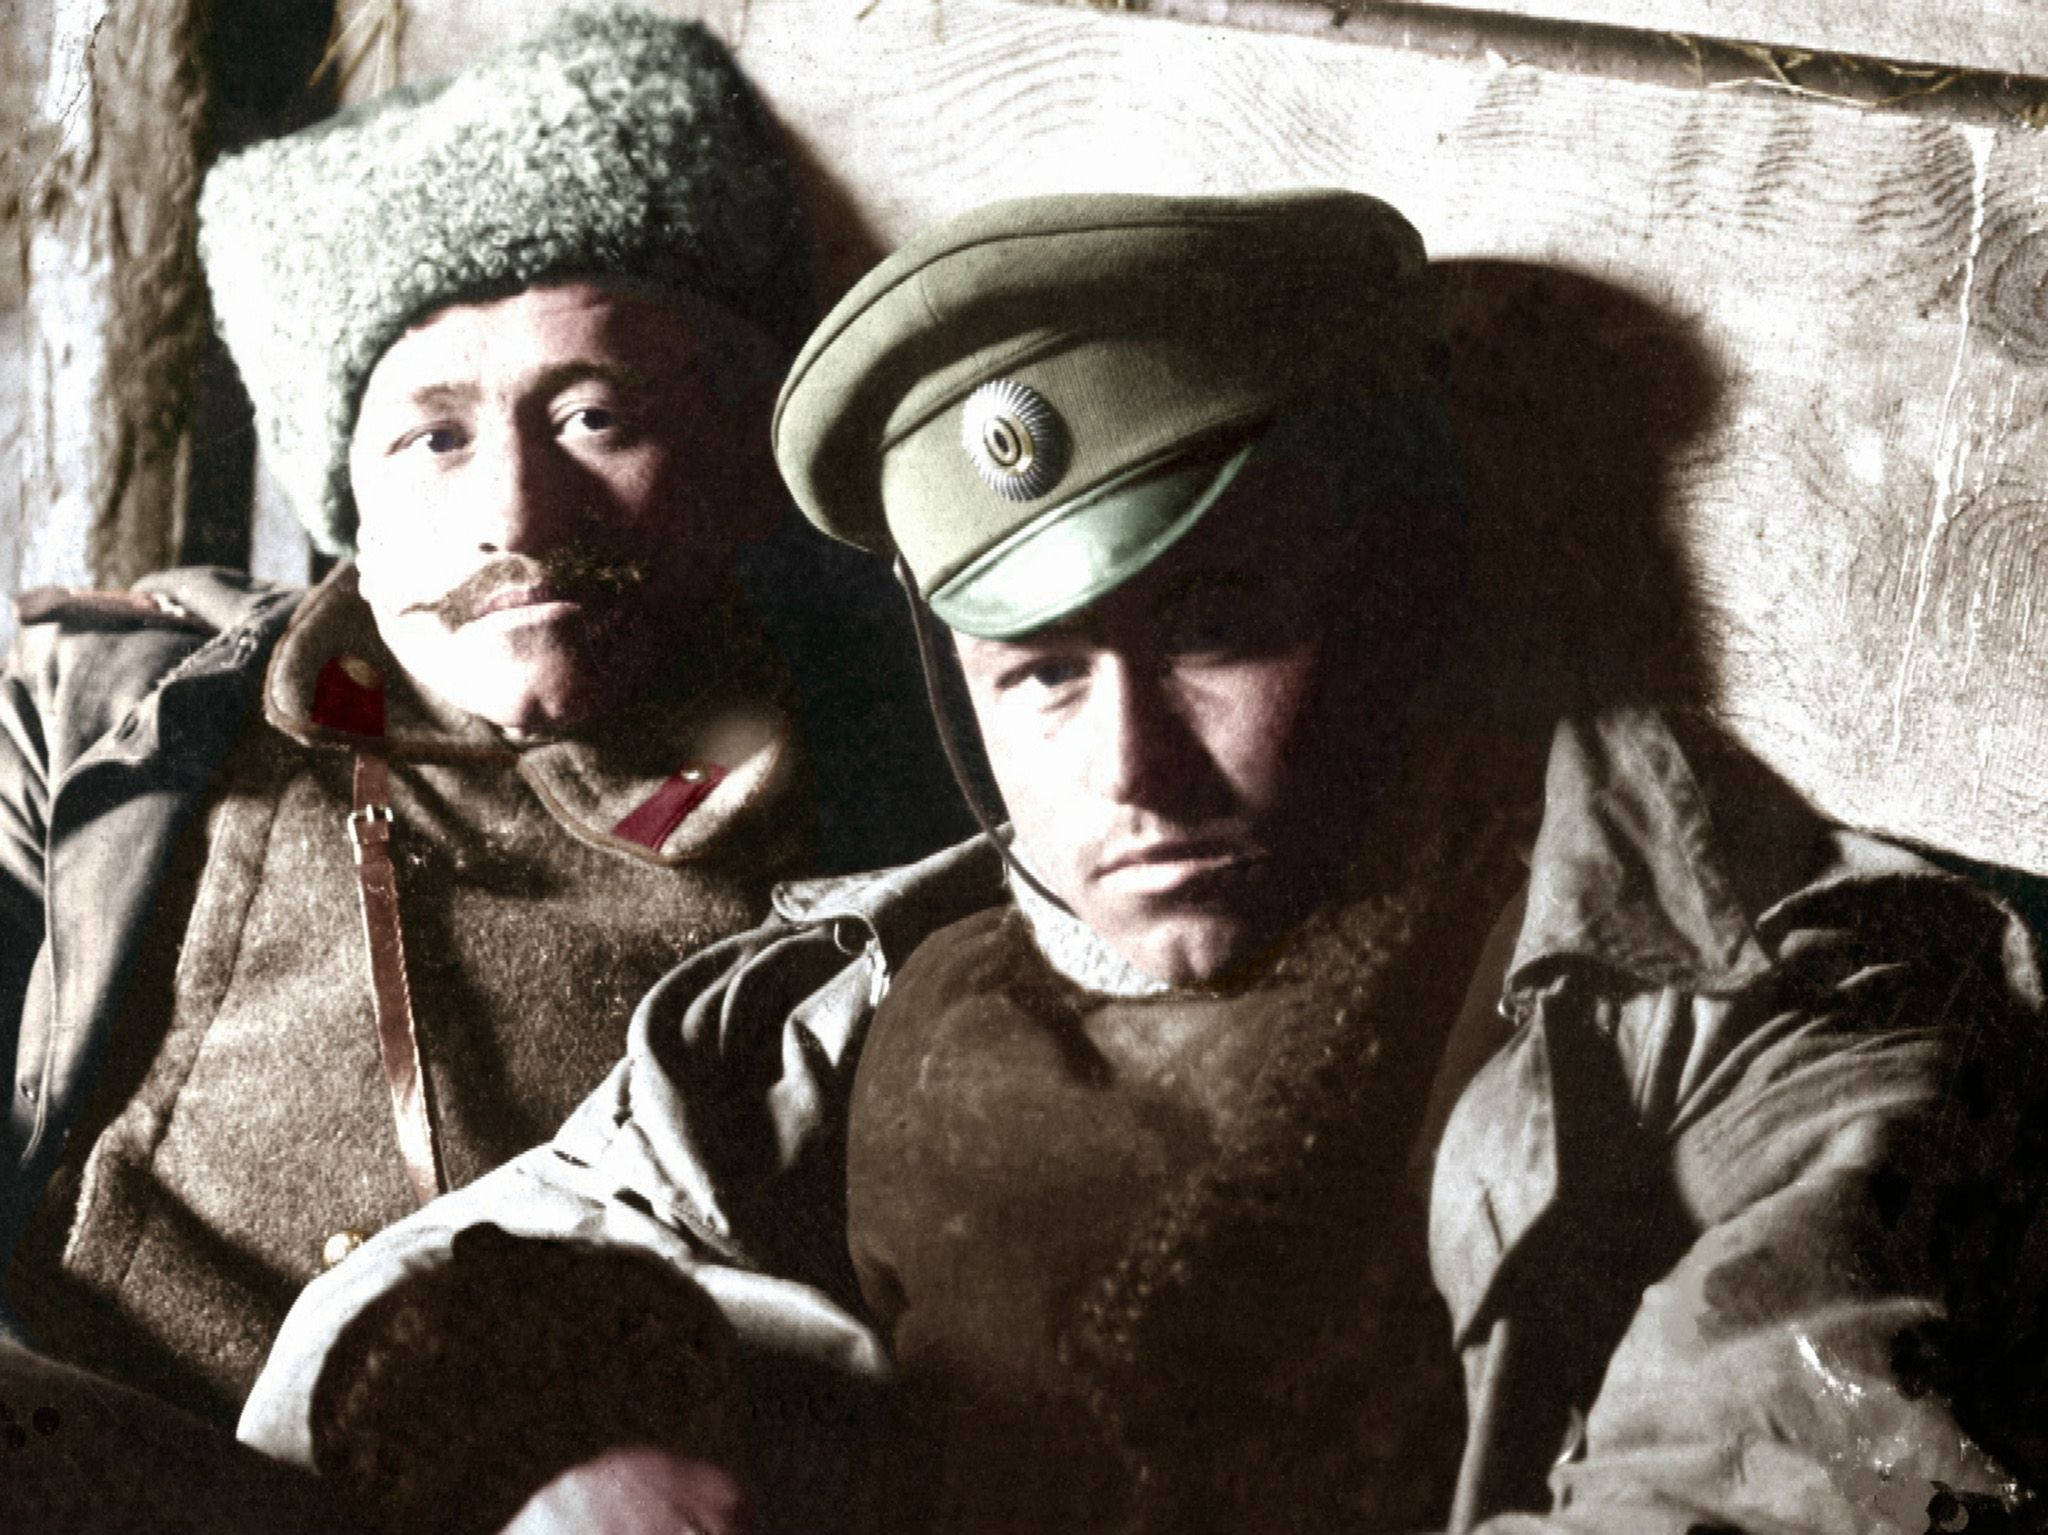 Russian soldiers.  This image is from 1917: One Year, Two Revolutions. [Photo of the day - February 2019]